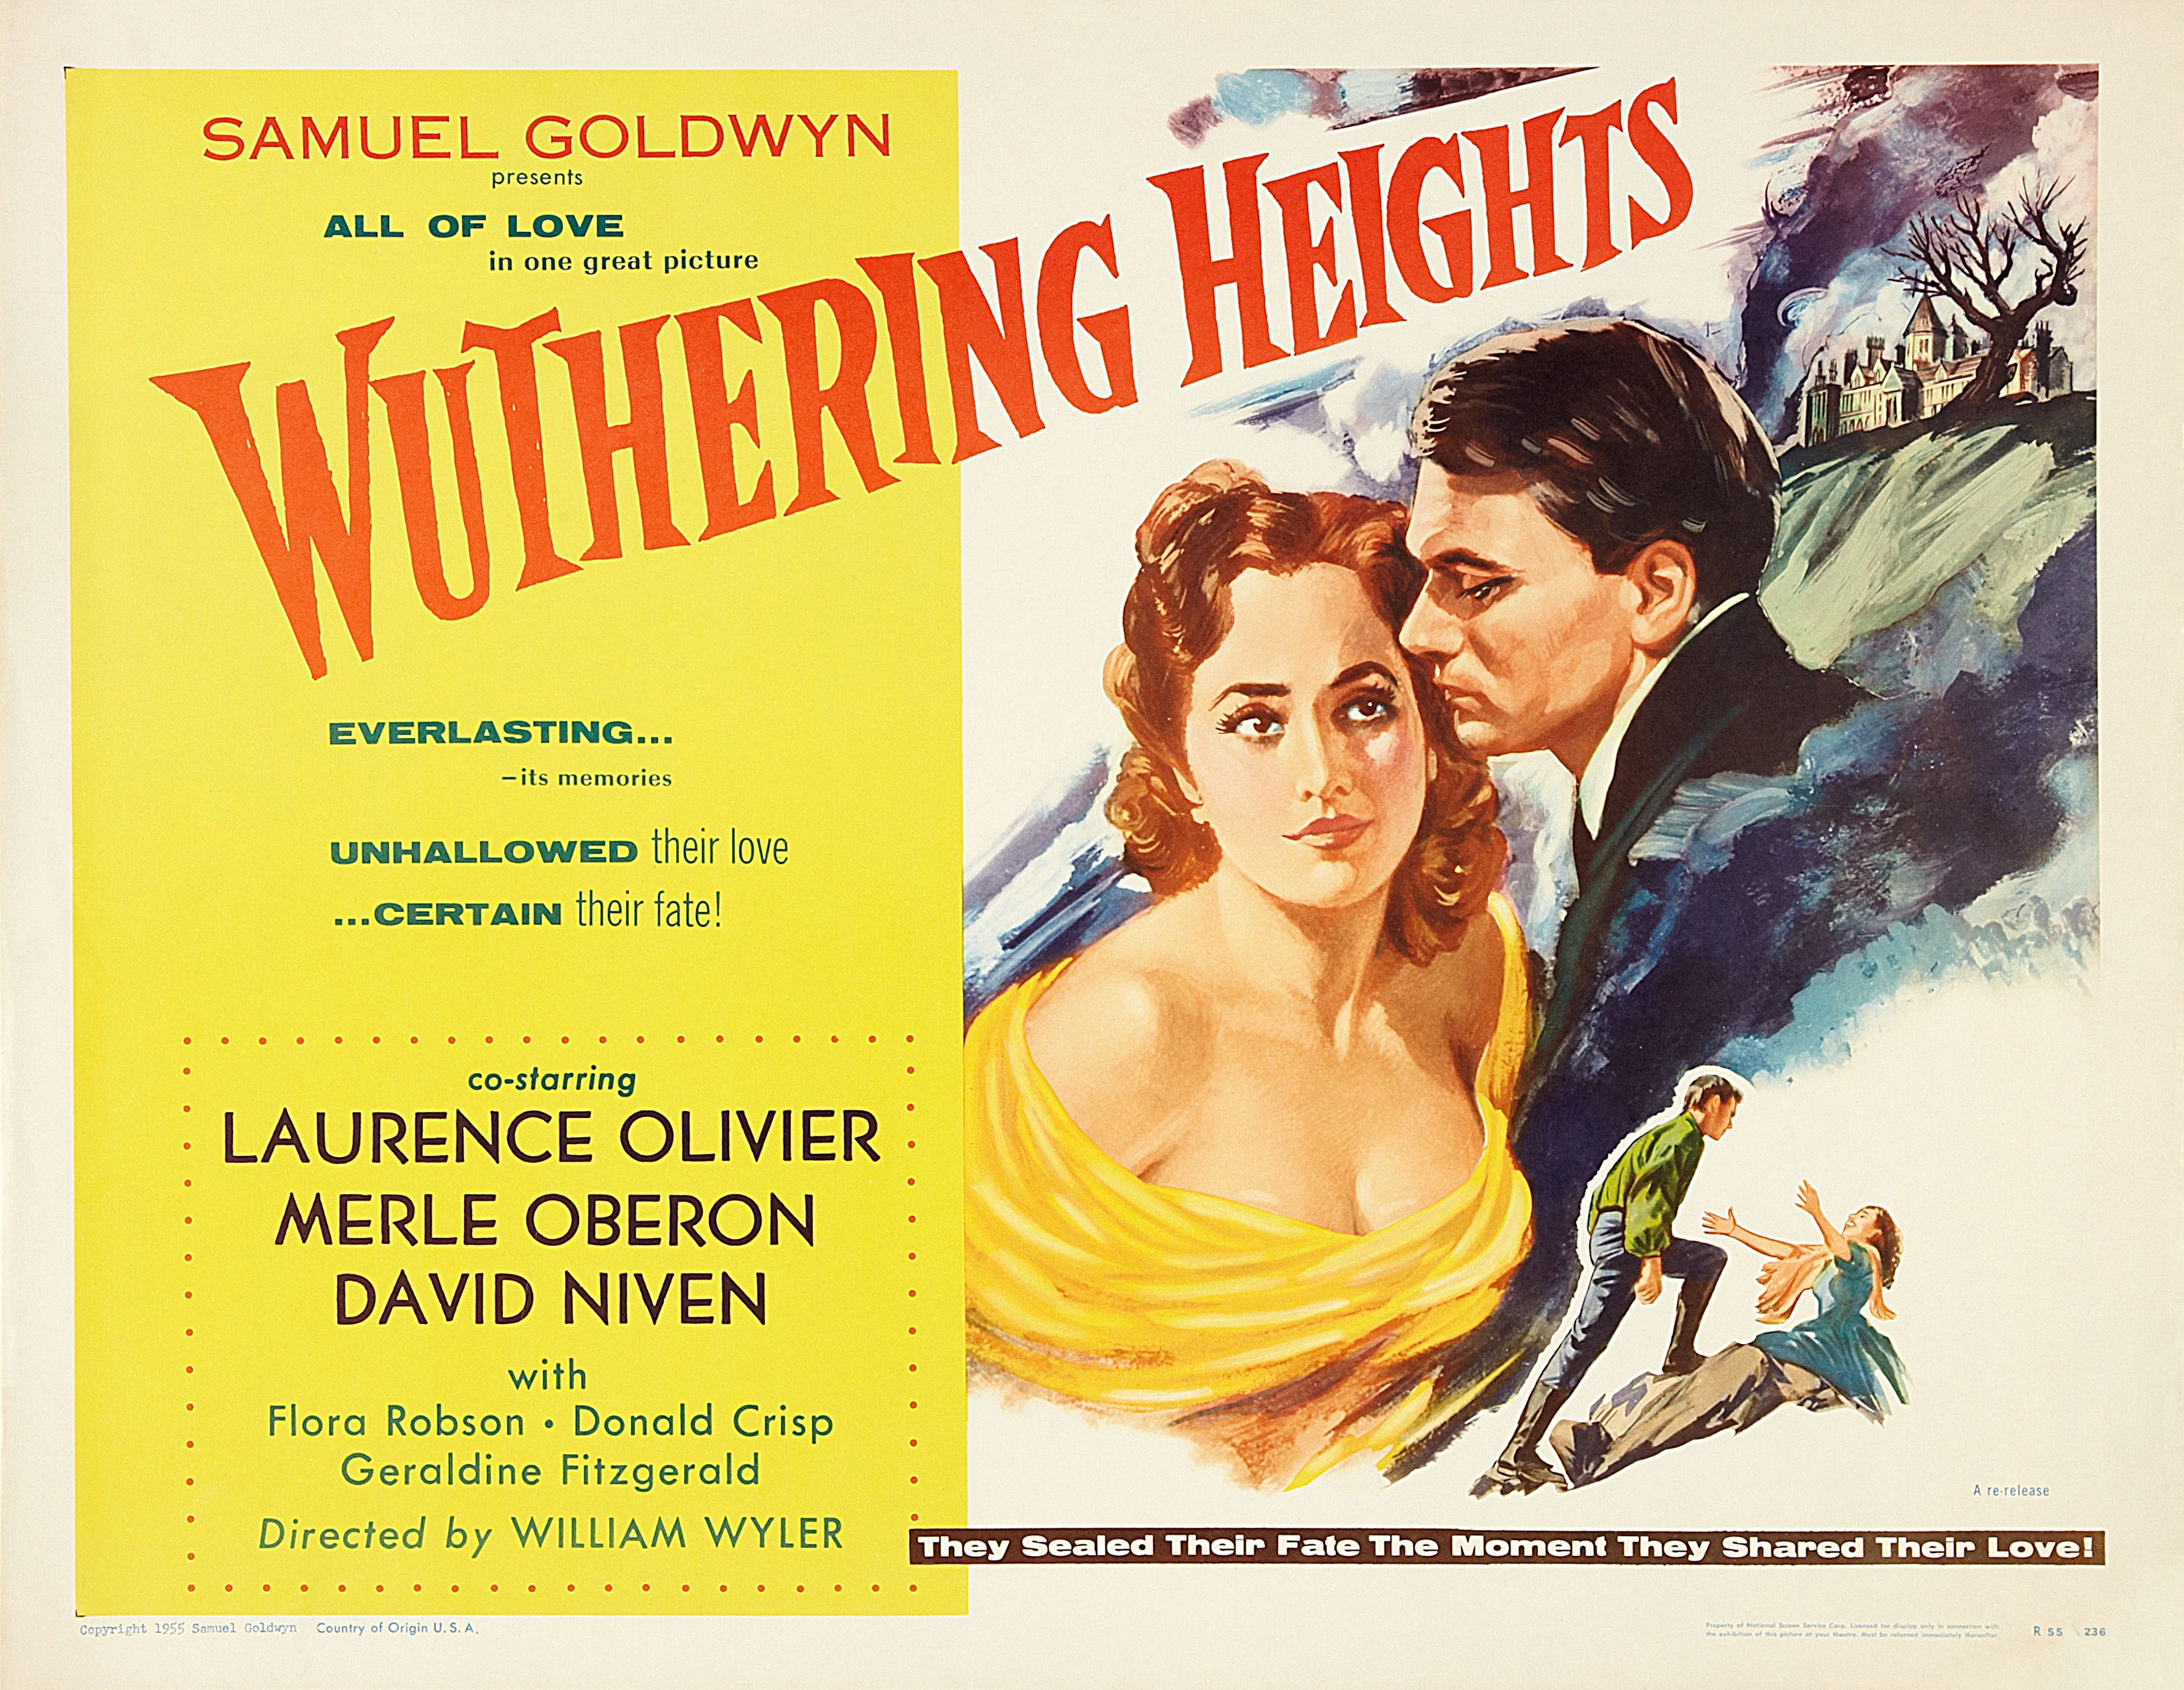 wuthering heights comments Jennie b- reviews across the tracks / ghosts 71 comments i've been meaning to read this book since forever wuthering heights may not be the first gothic novel, but it's definitely one of.